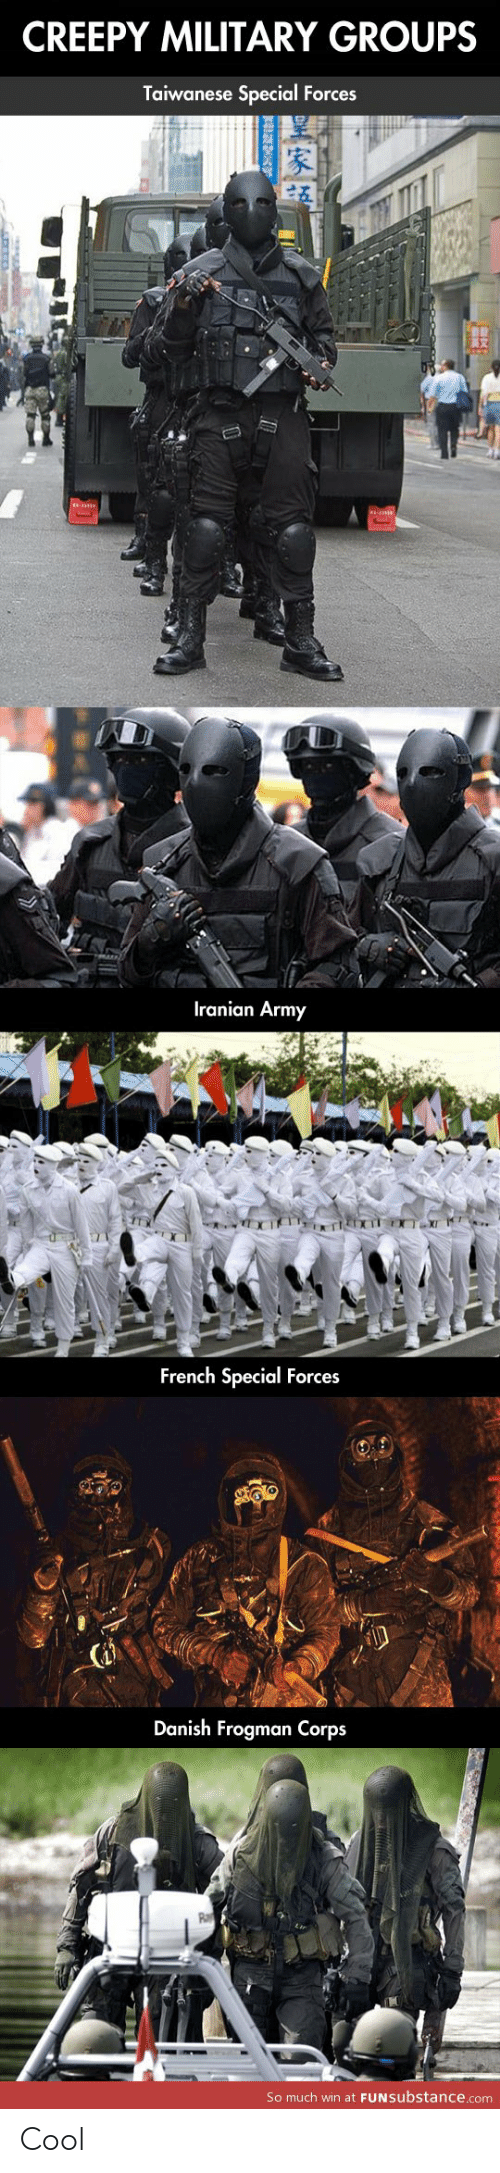 Iranian: CREEPY MILITARY GROUPS  Taiwanese Special Forces  Iranian Army  French Special Forces  Danish Frogman Corps  So much win at FUNSubstance.com Cool